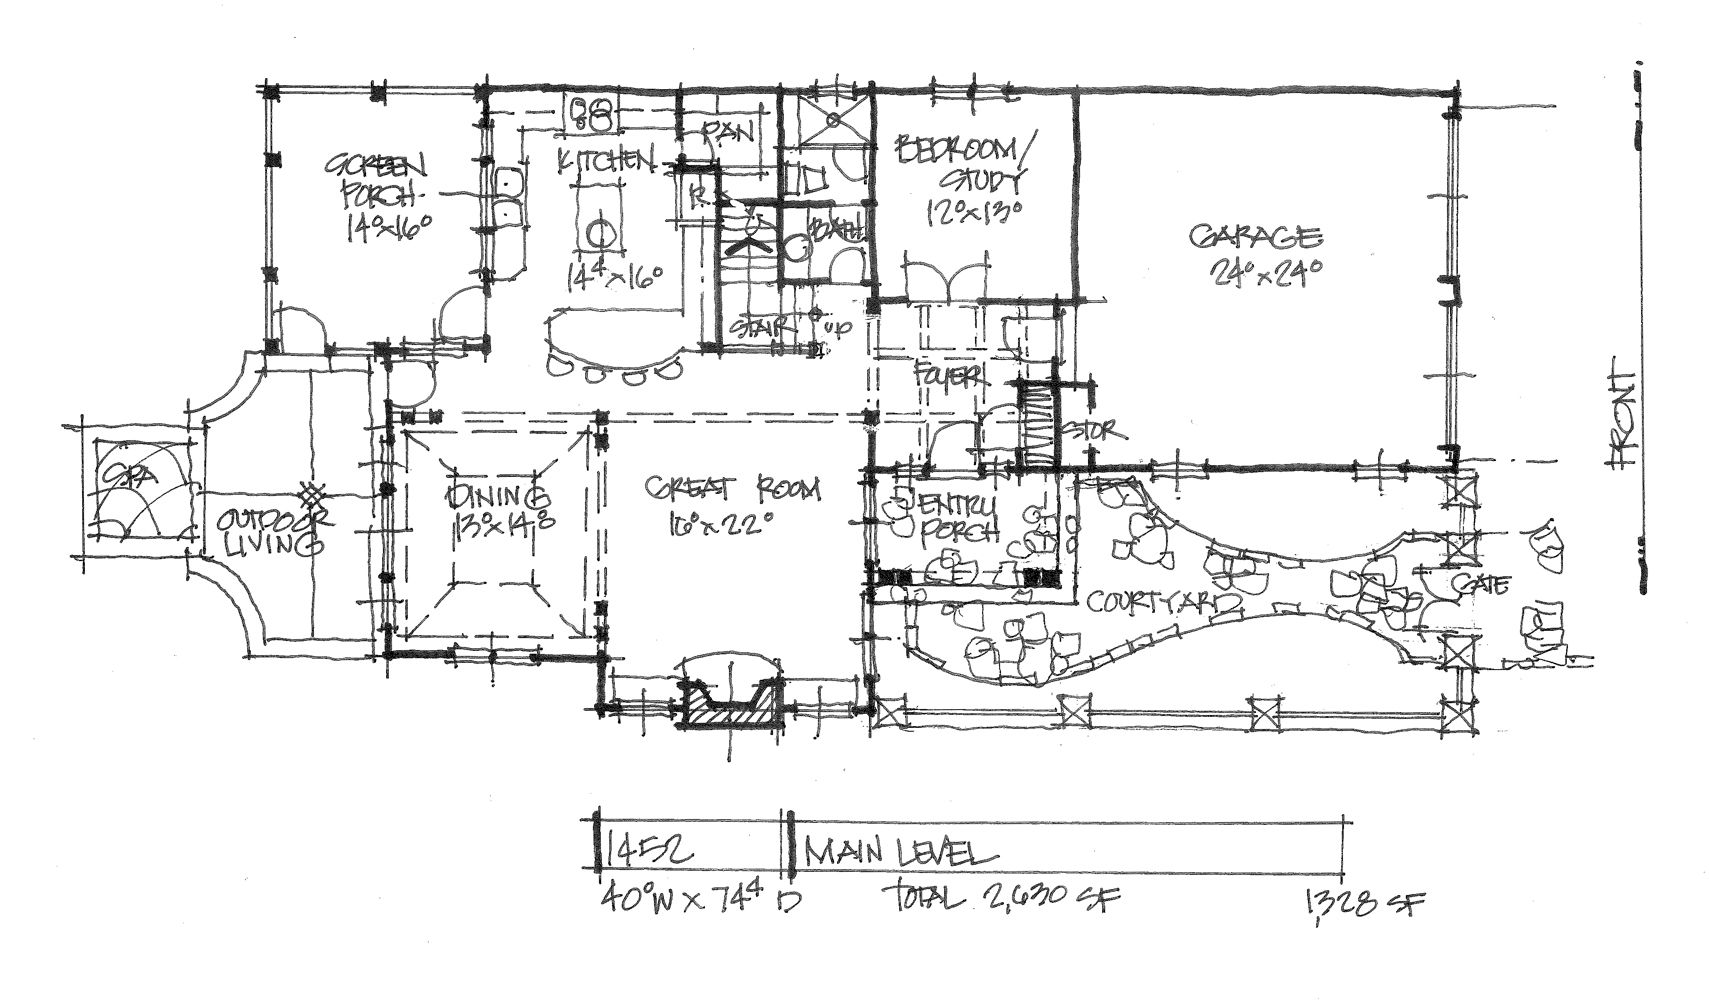 Check out the first floor plan of house plan 1452. See more details on our house plans blog! #WeDesignDreams